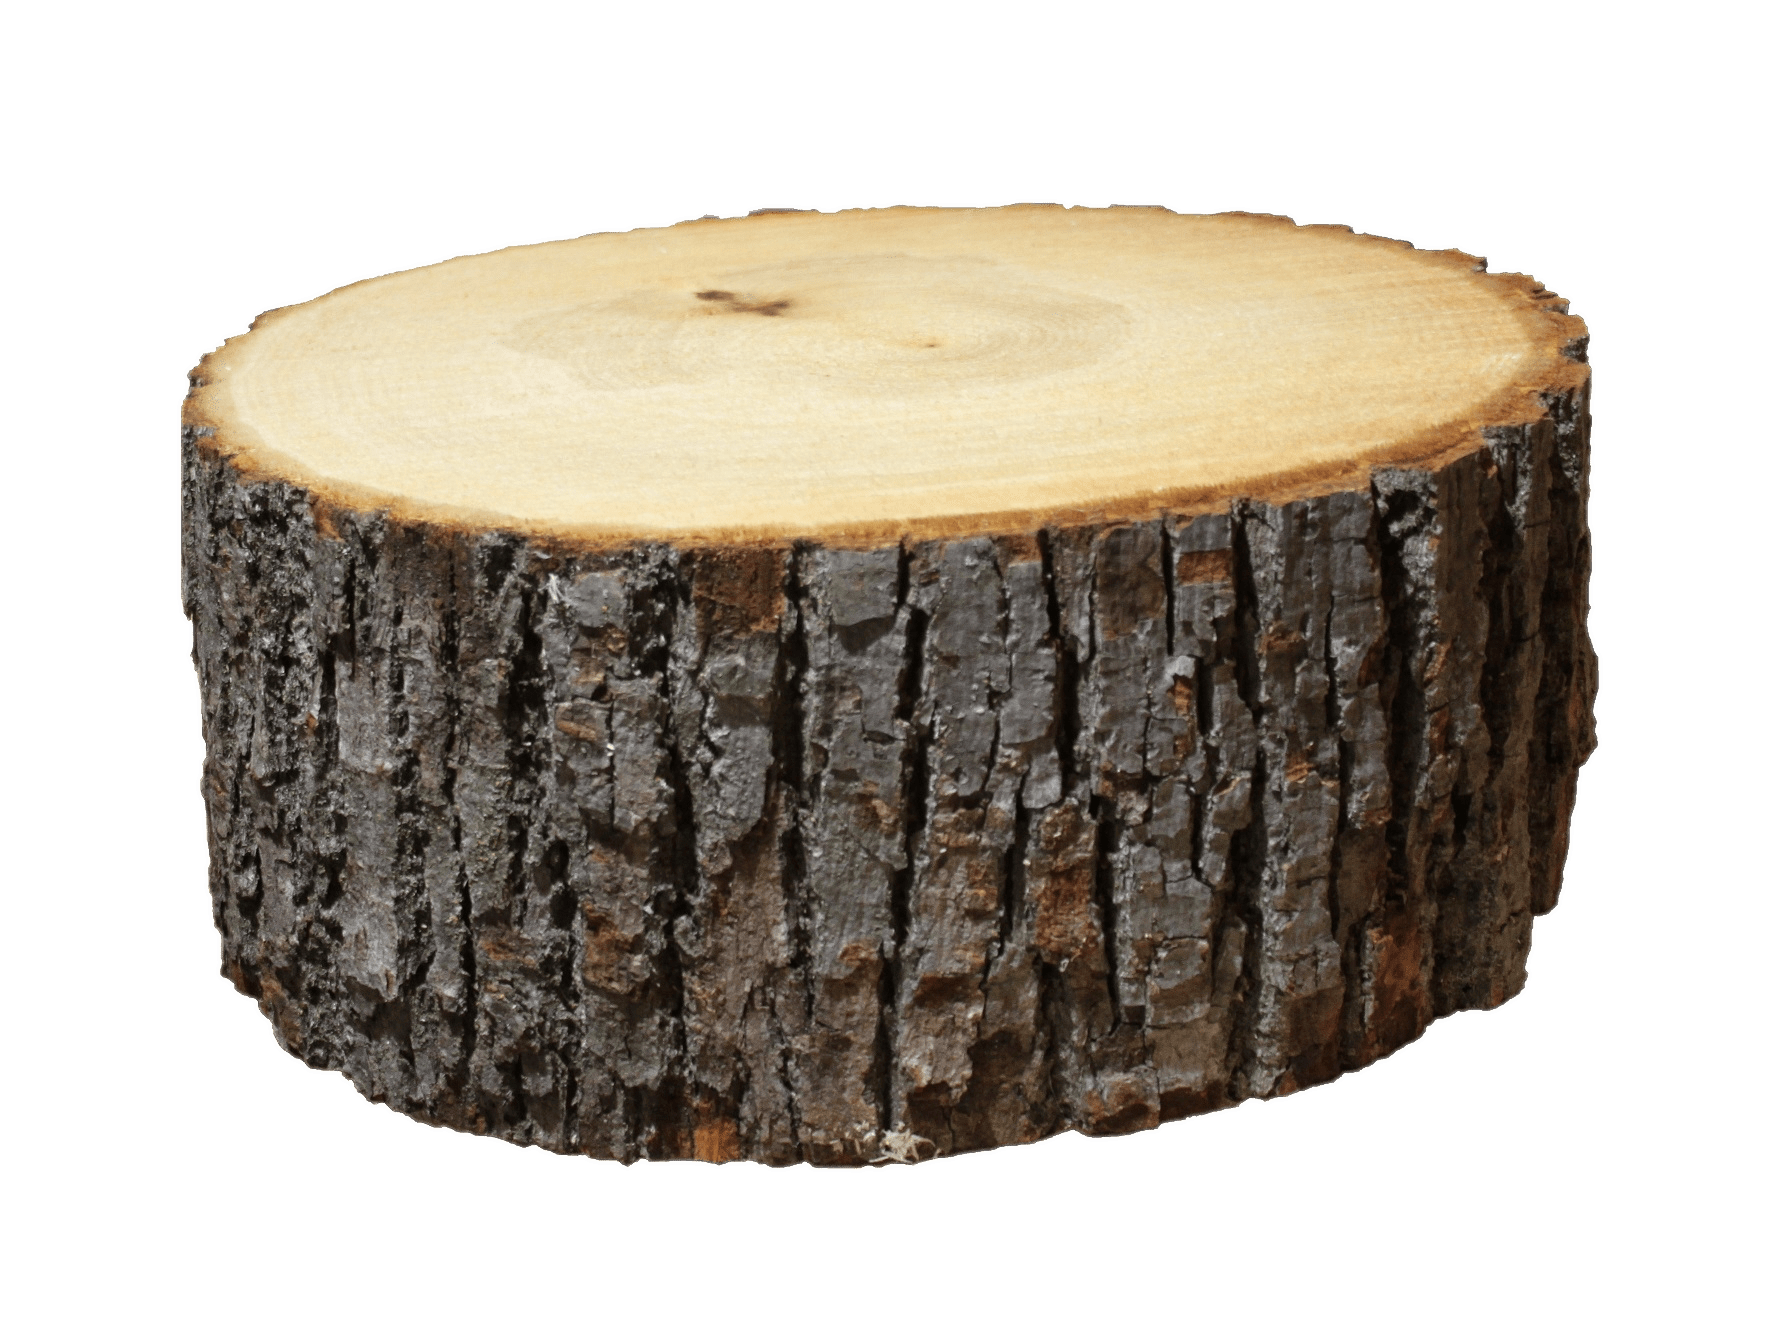 Log png image. Section transparent stickpng nature